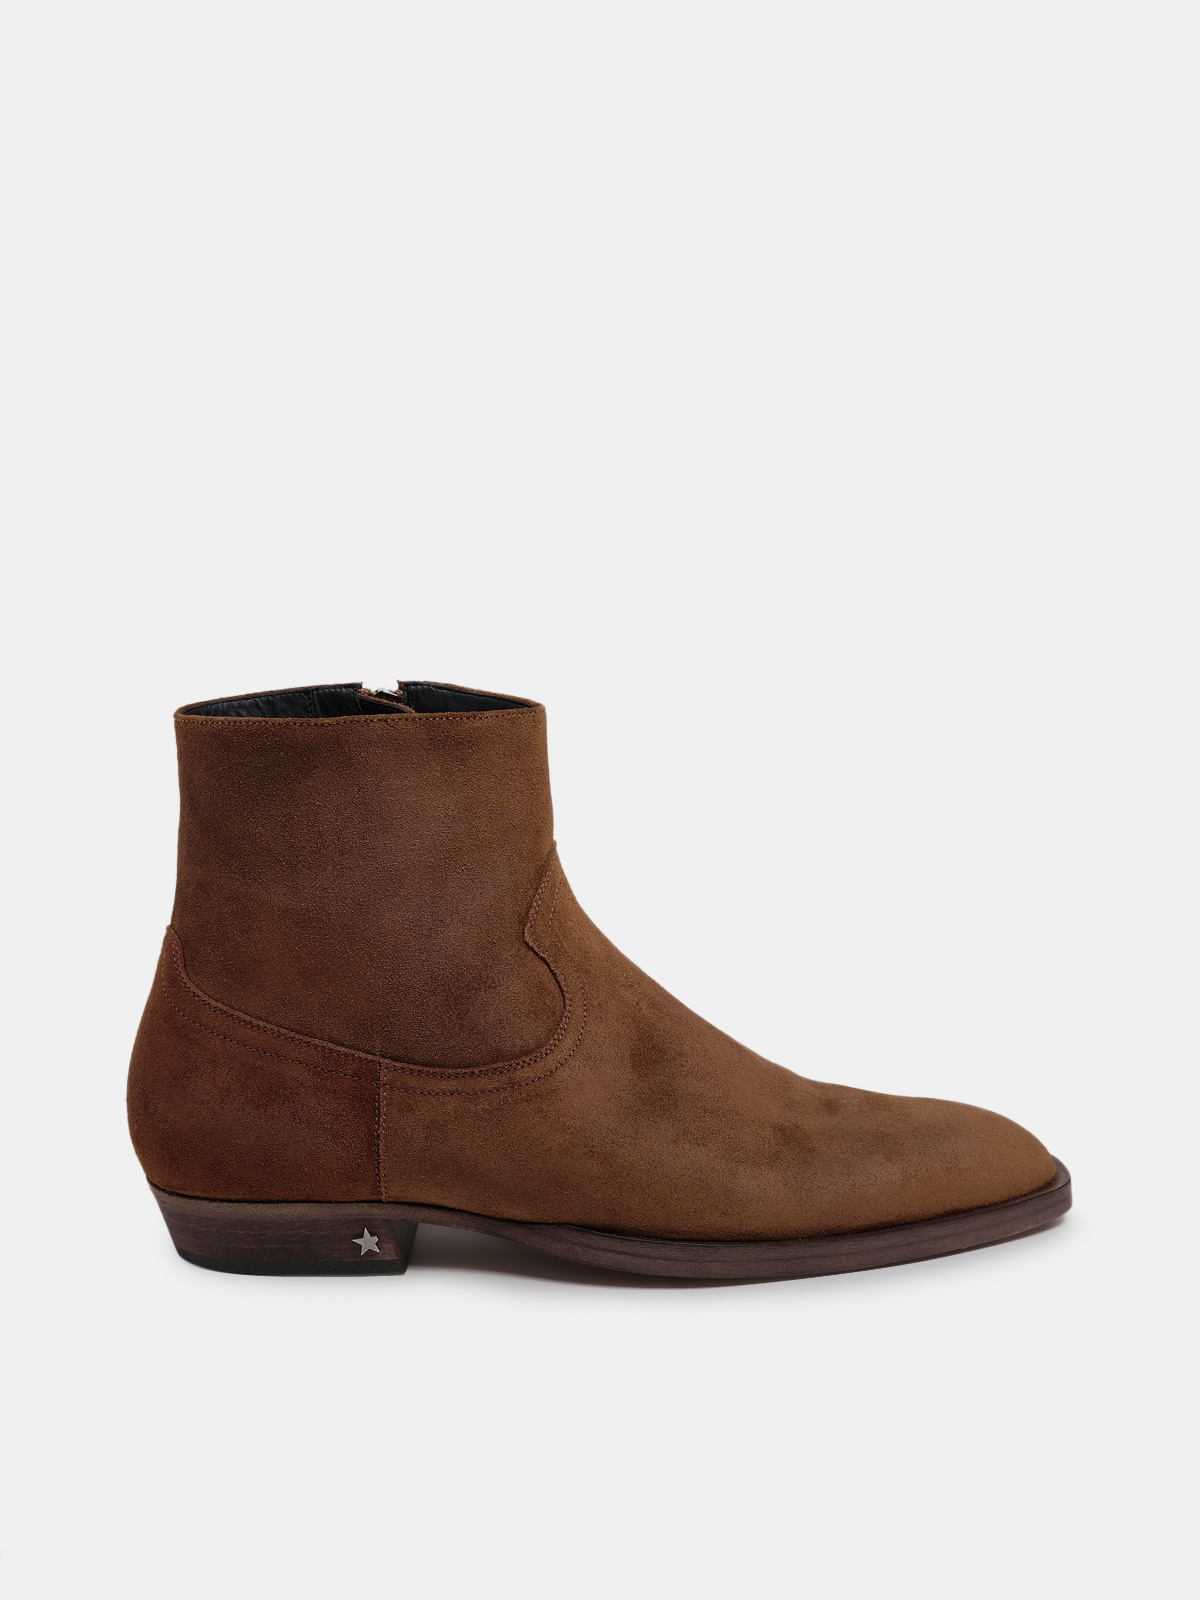 Golden Goose - Rock Jimi ankle boots in brown suede leather in